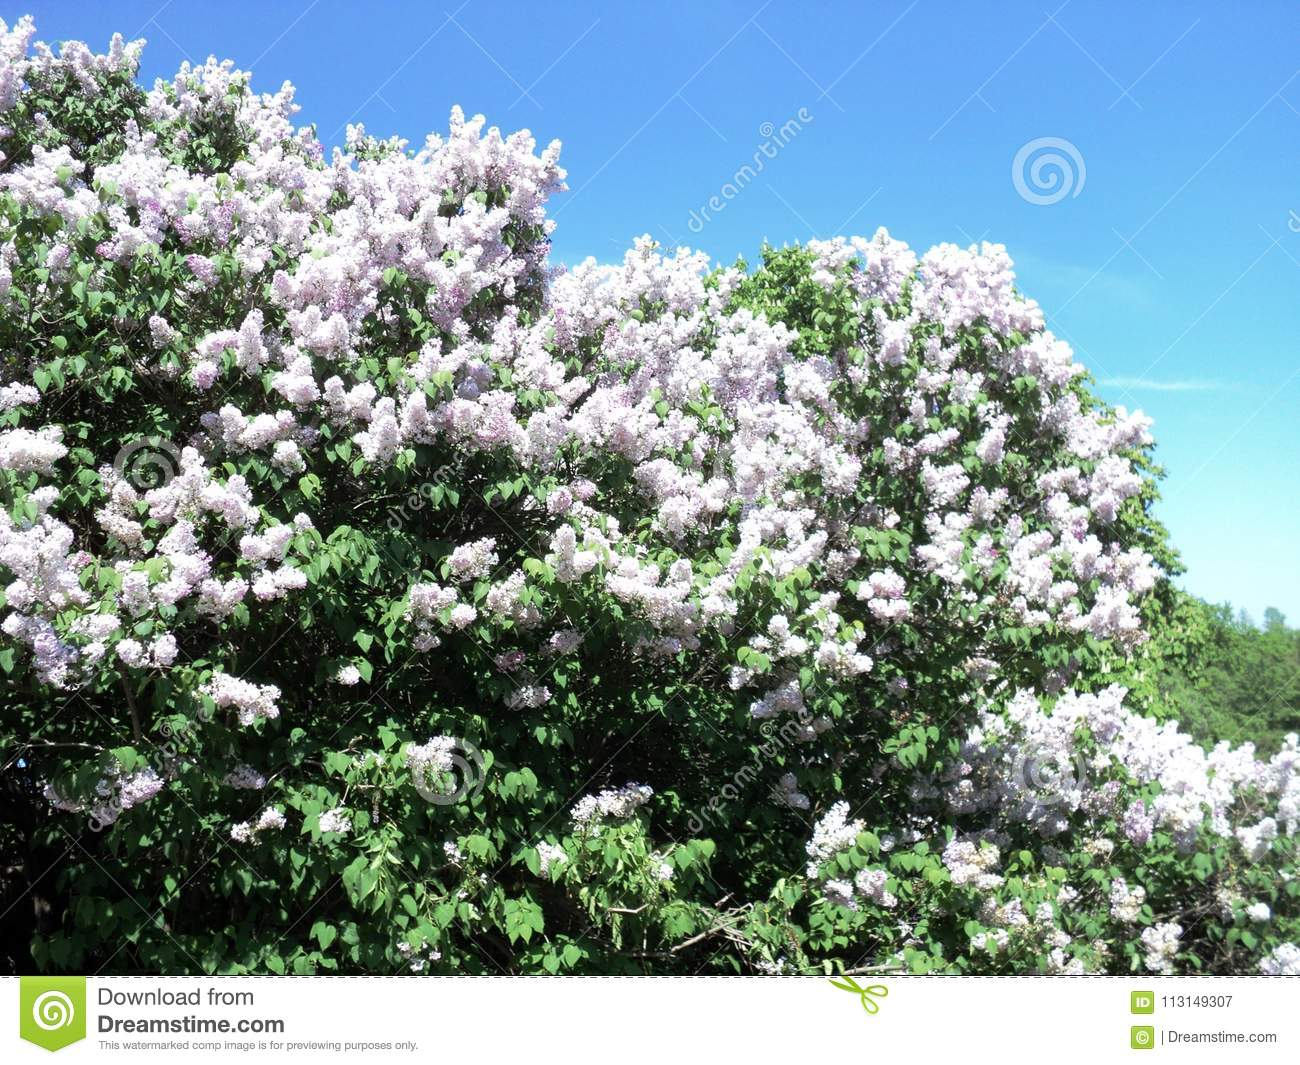 Spring Flowering Lilac Bushes In The Botanical Garden Stock Image